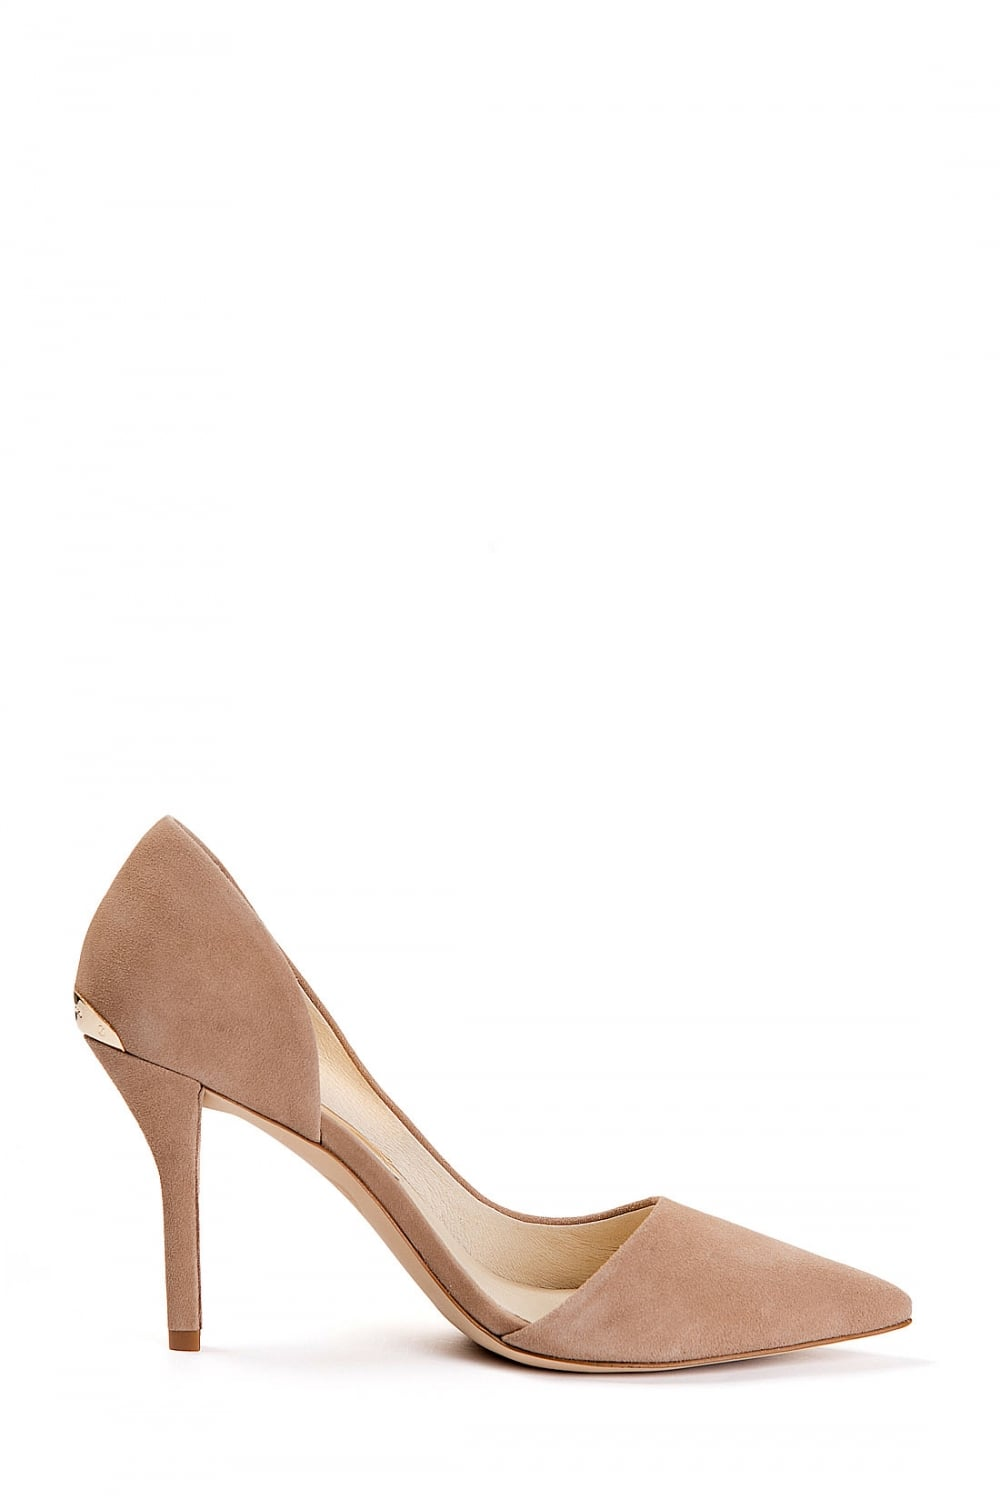 4e55f8365090 MICHAEL KORS Michael Kors Suede Julieta Pump Caramel - Clothing from ...